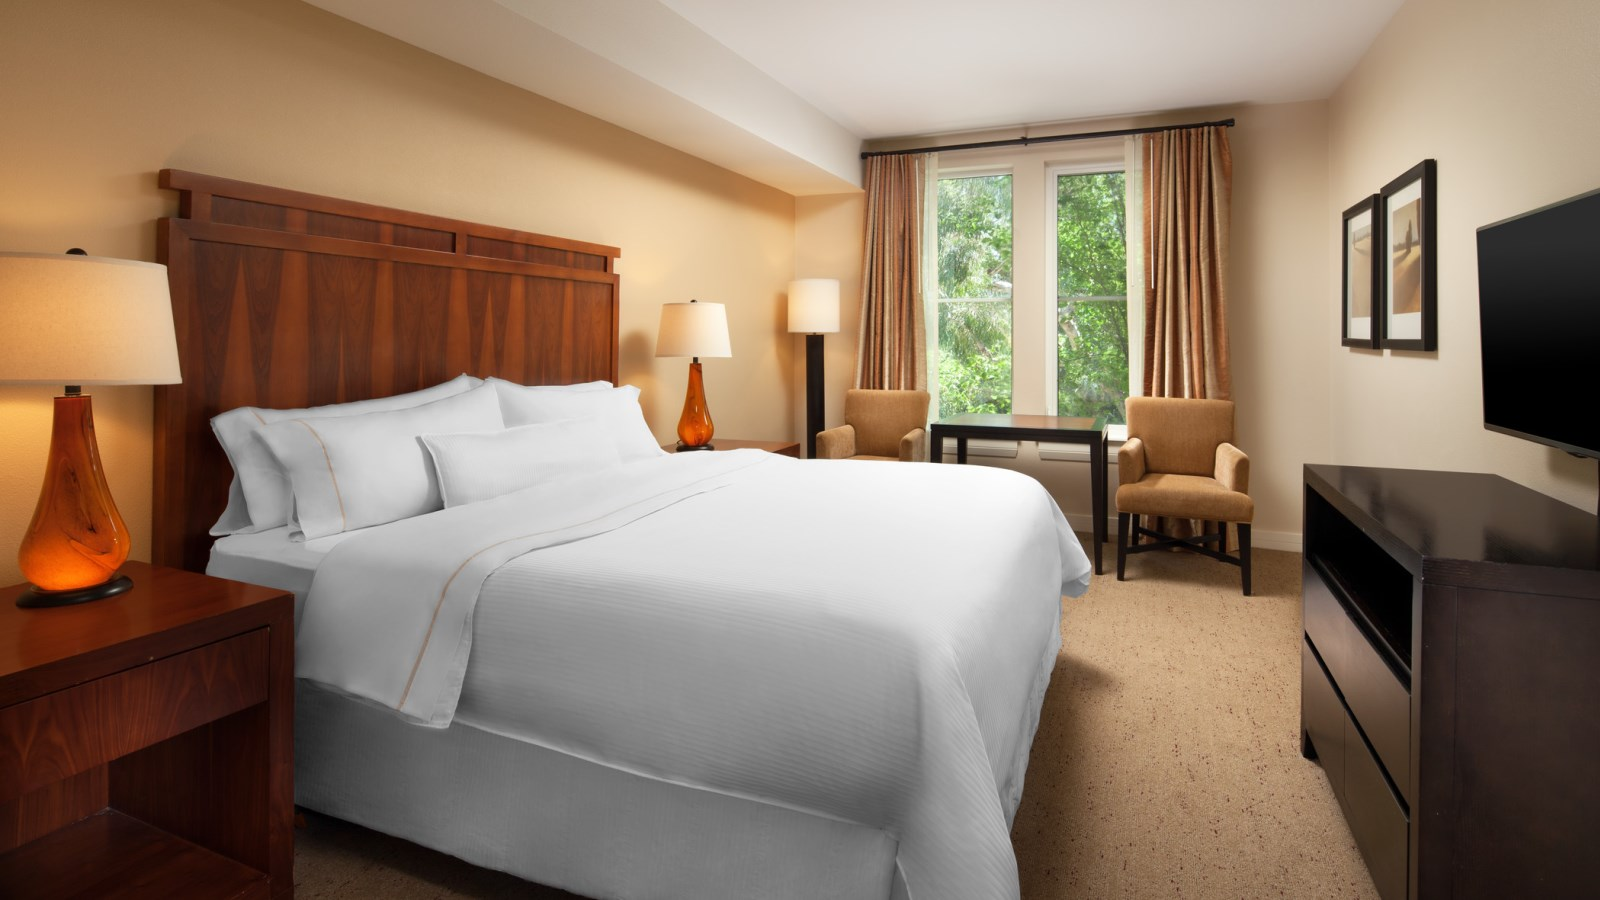 The Westin Verasa Napa Hotel - Traditional King Rooms